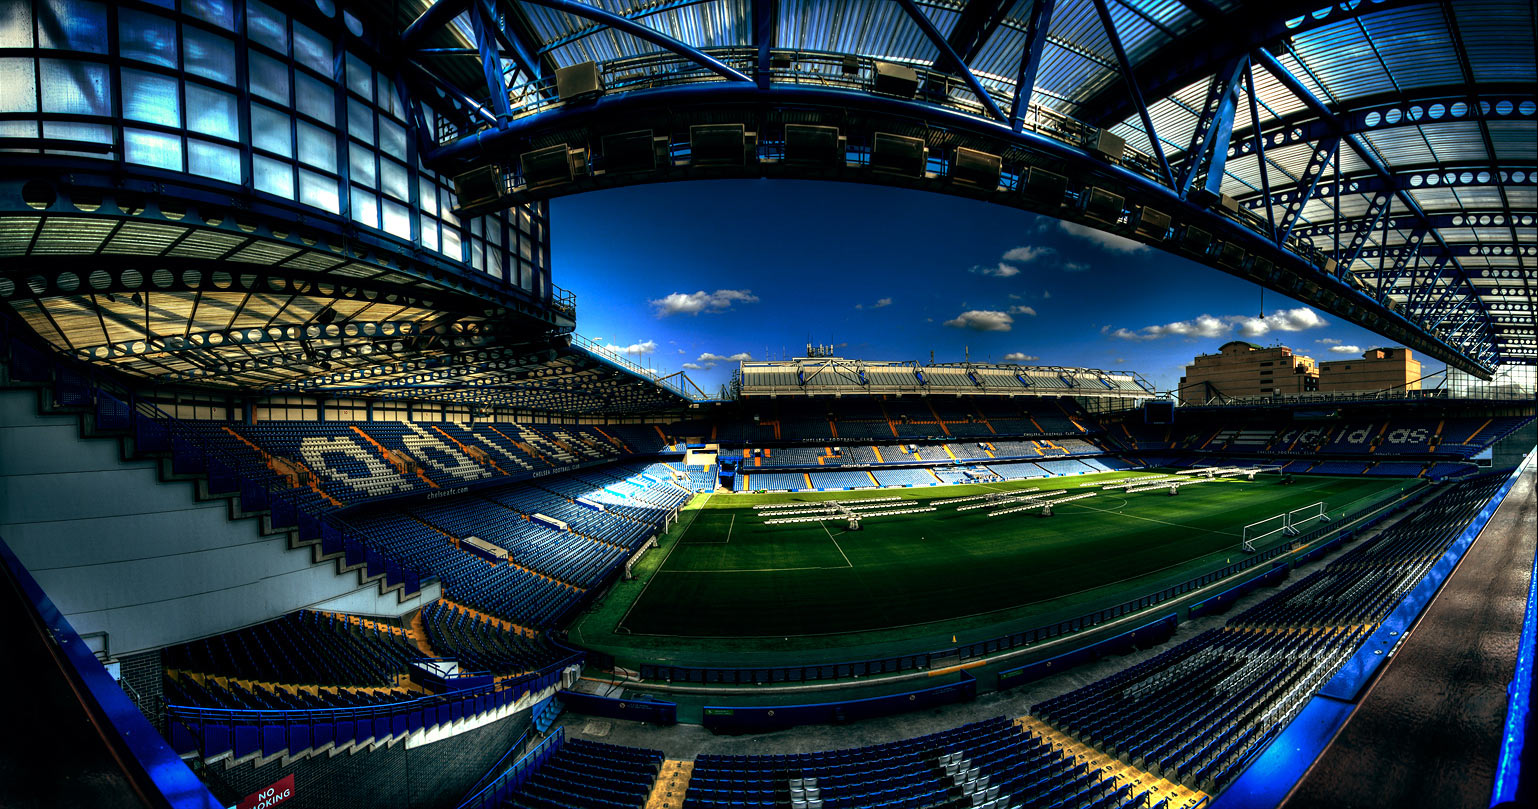 Wallpapers [38+] HD WallpaperSafari 1080p Chelsea on